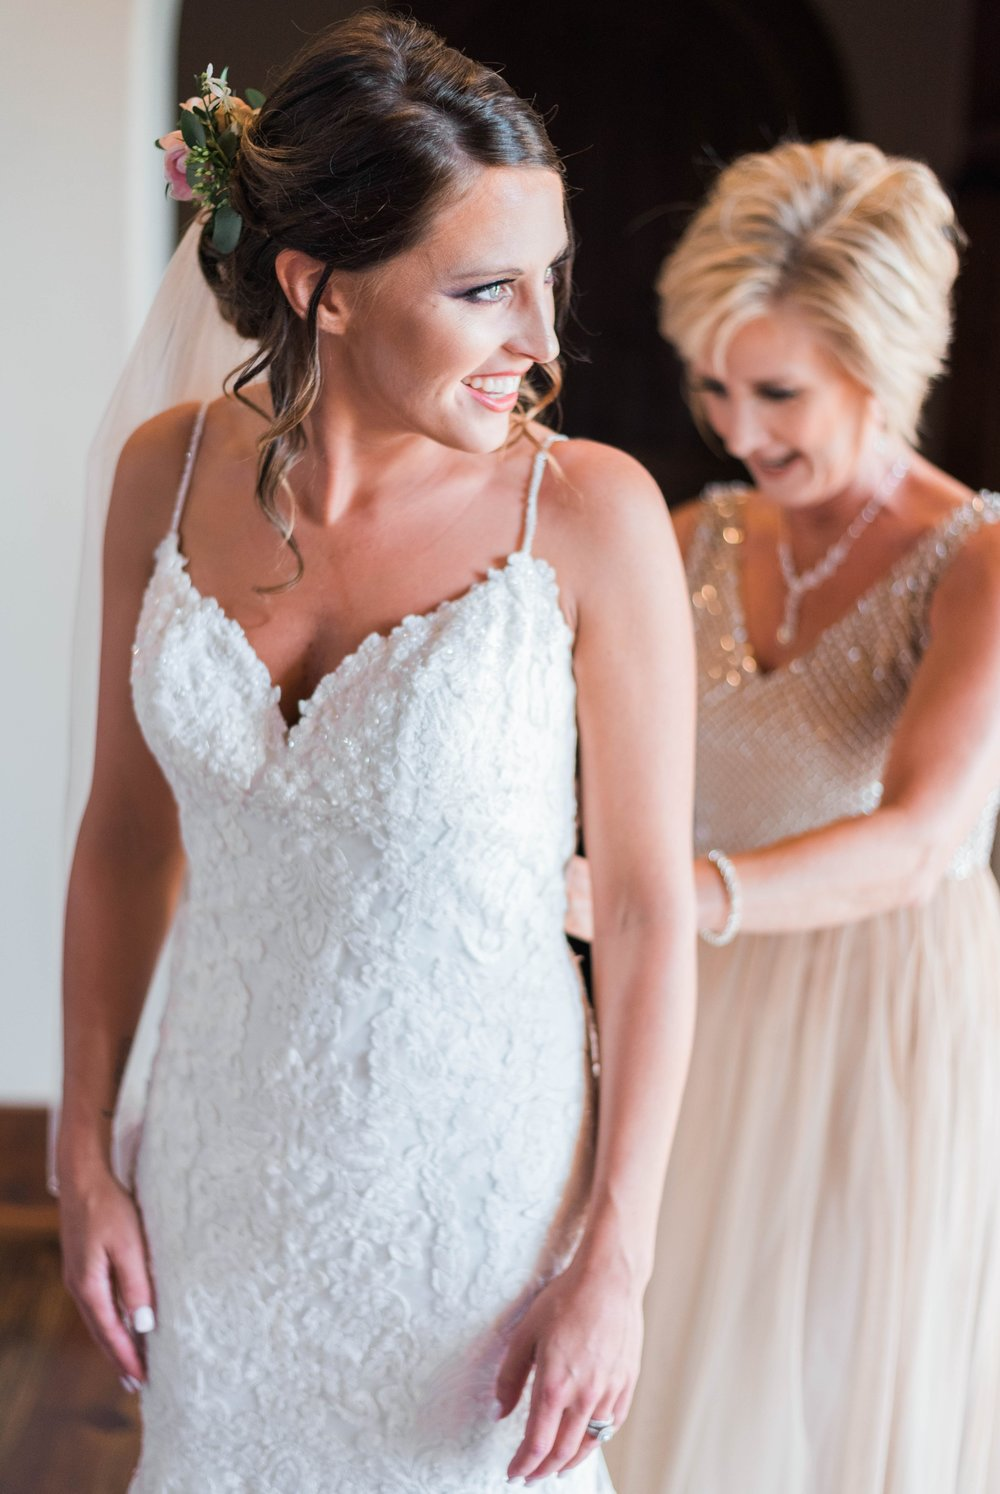 atkinson farms_VirginiaWeddingPhotographer_LynchburgWeddingPhotographer_DylanandLauren 11.jpg